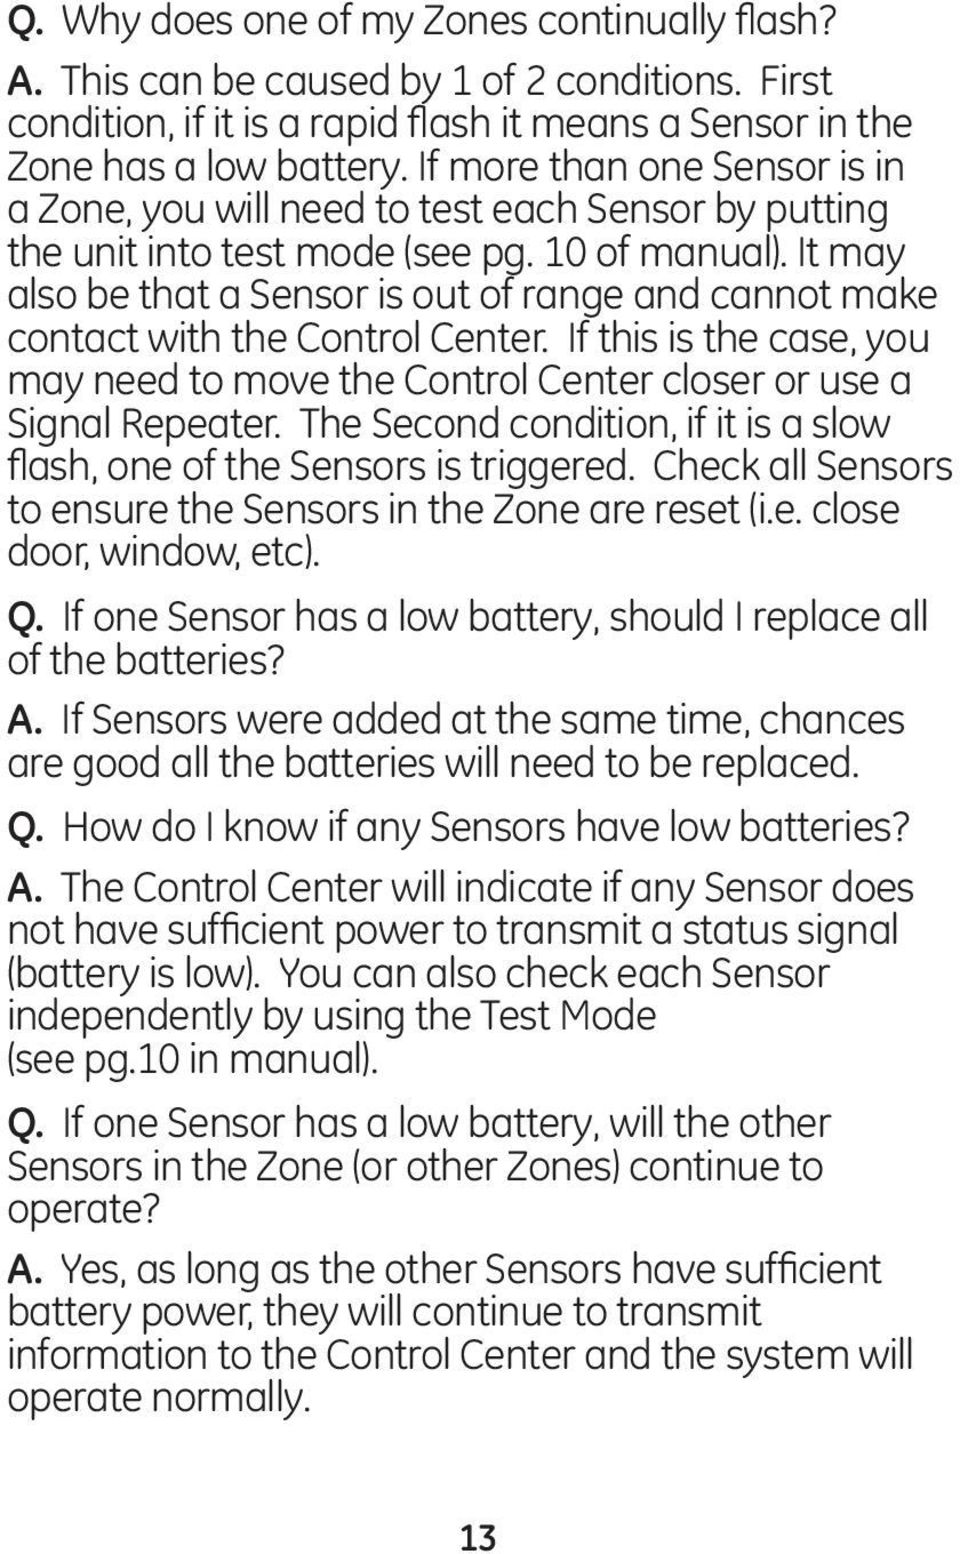 It may also be that a Sensor is out of range and cannot make contact with the Control Center. If this is the case, you may need to move the Control Center closer or use a Signal Repeater.